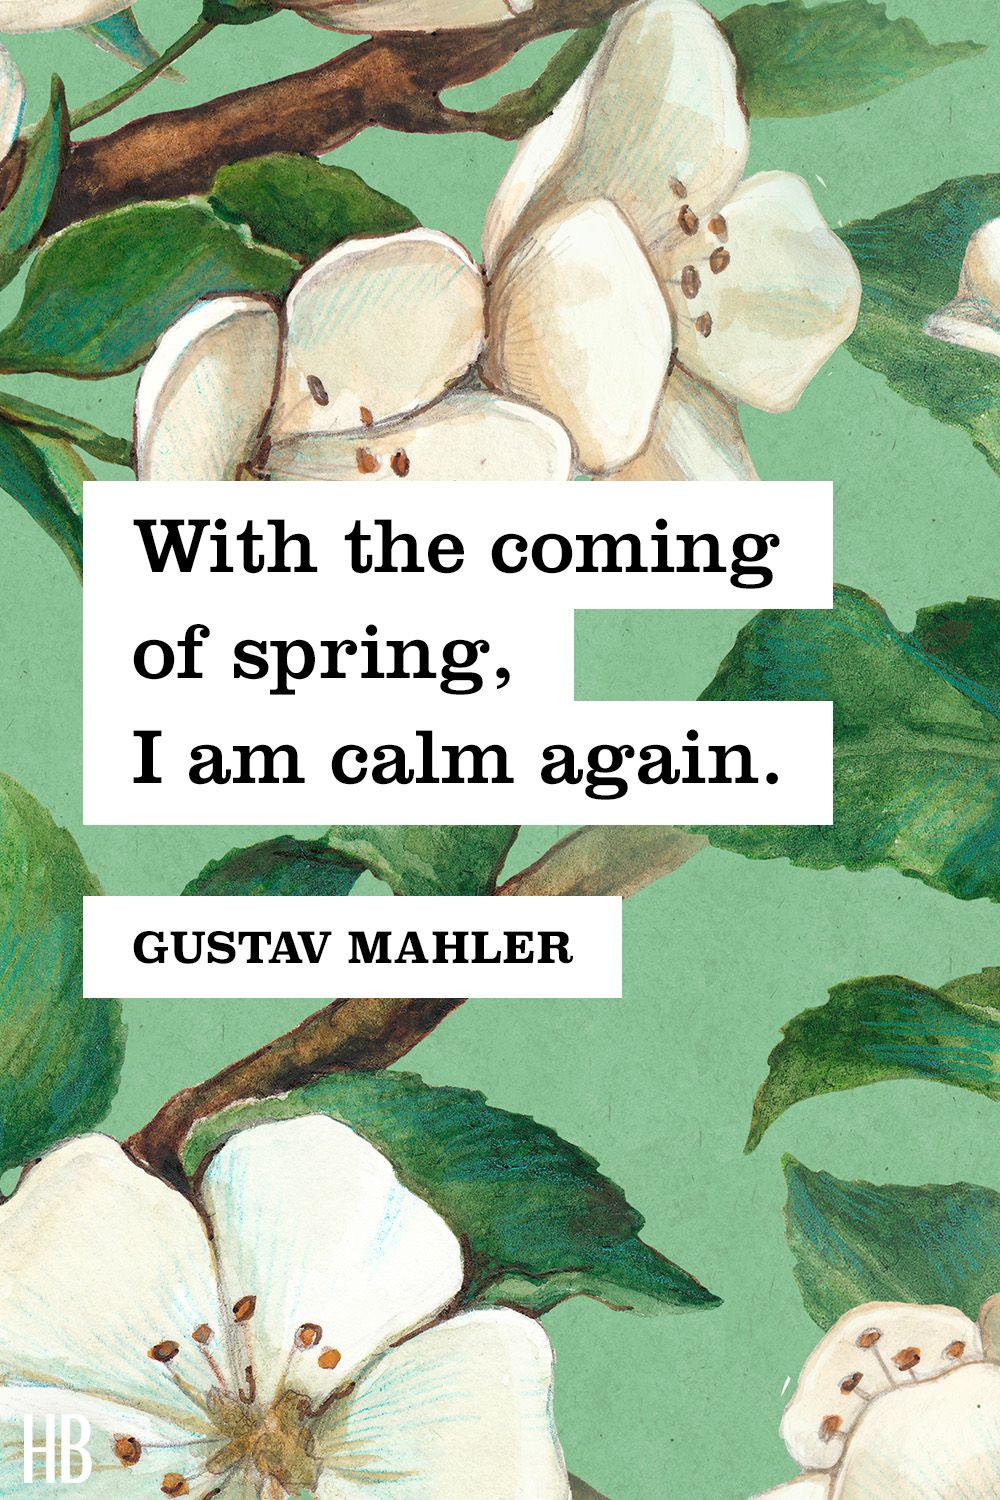 gustav mahler easter quote